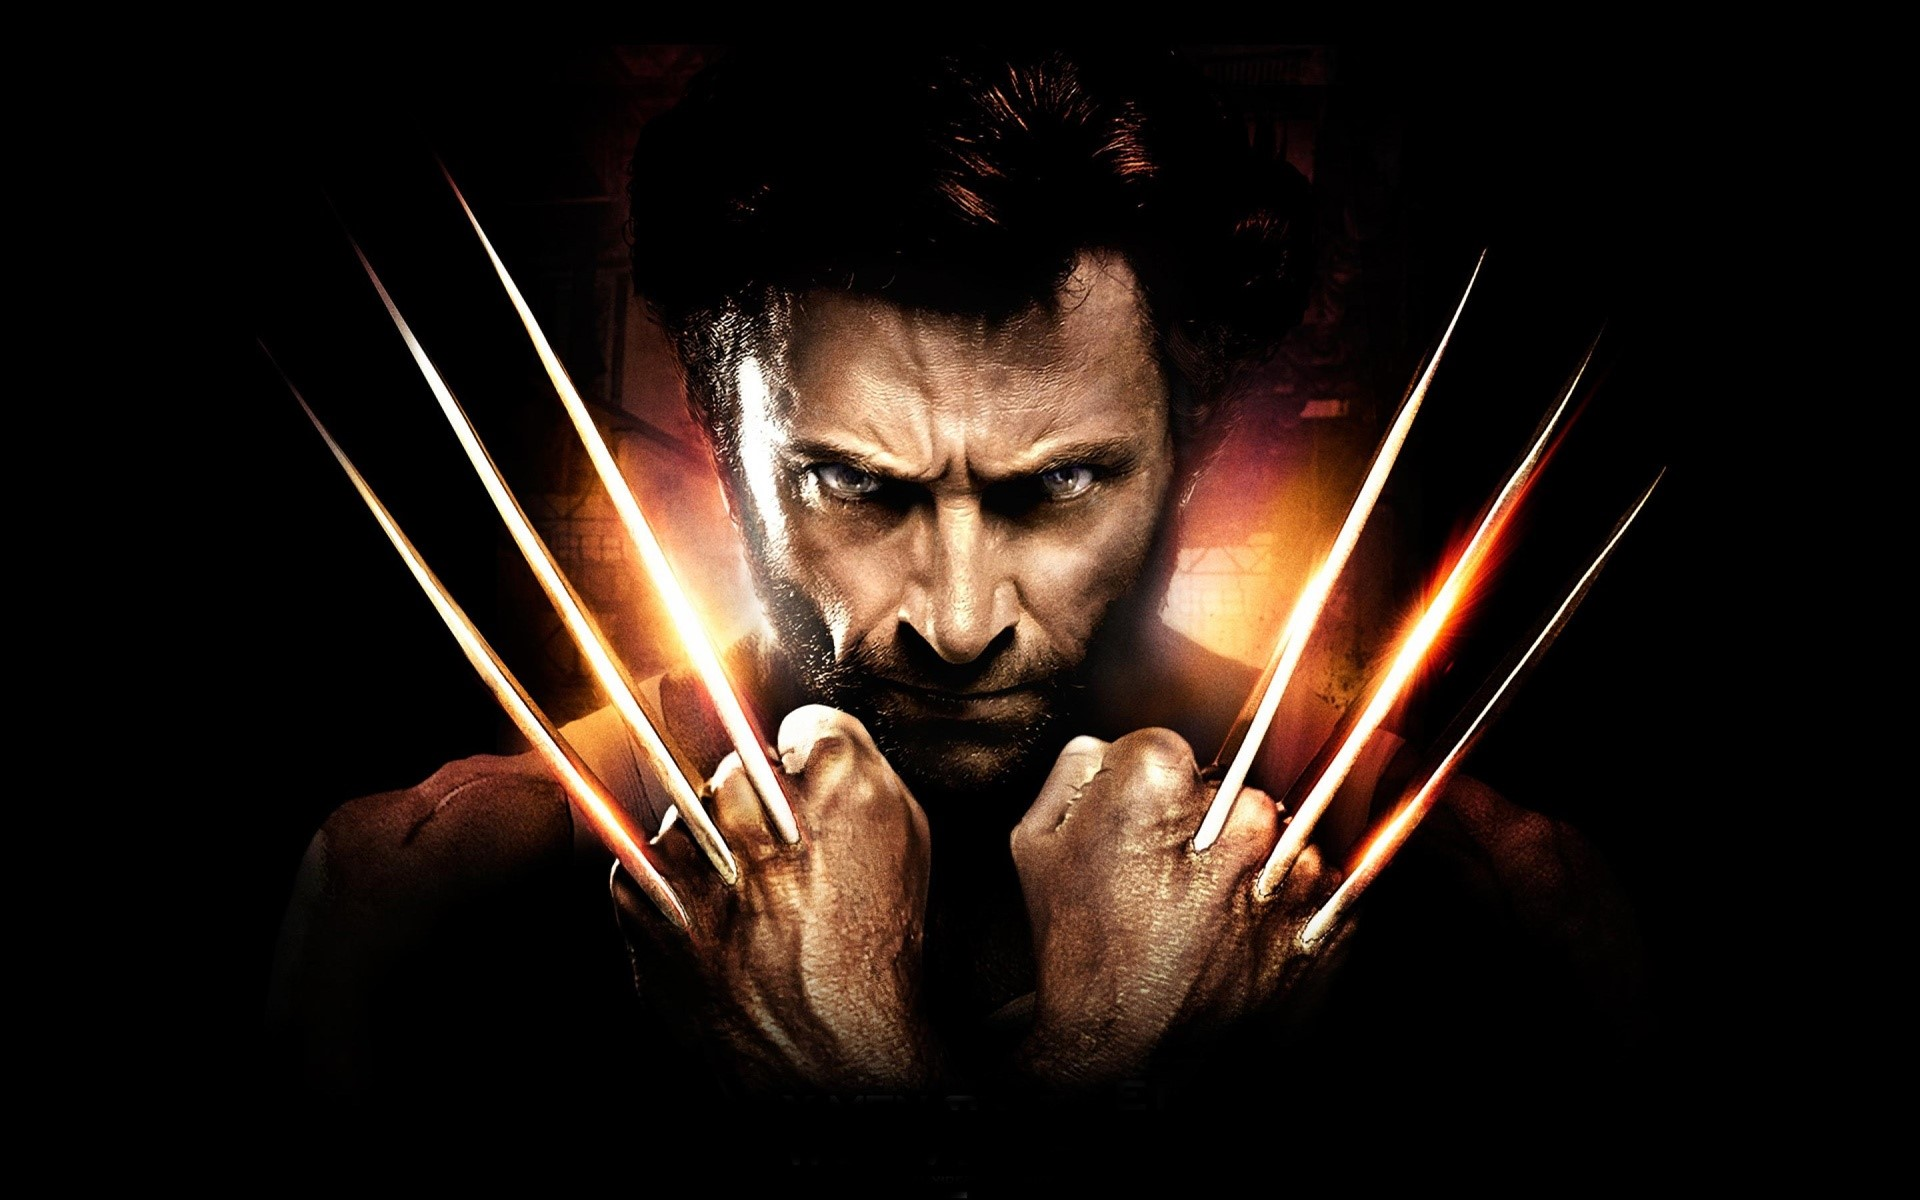 Wallpaper Hugh Jackman como Wolverine Images